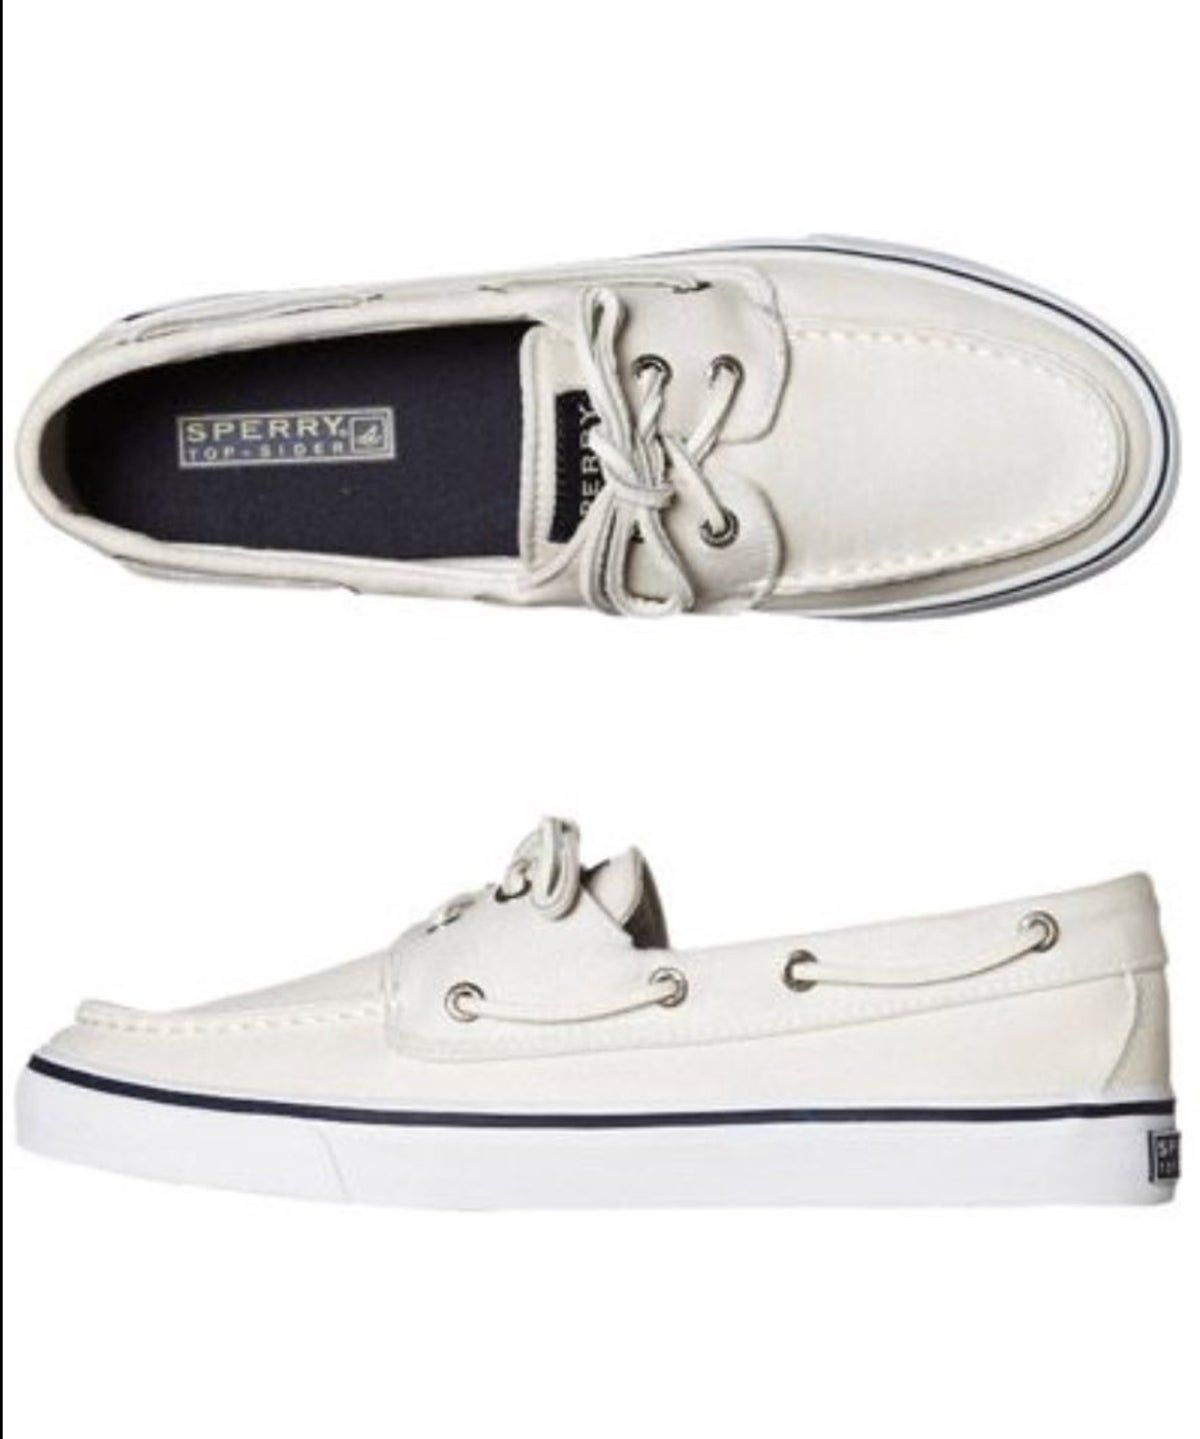 White Sperry boat shoes in 2020 | Boat